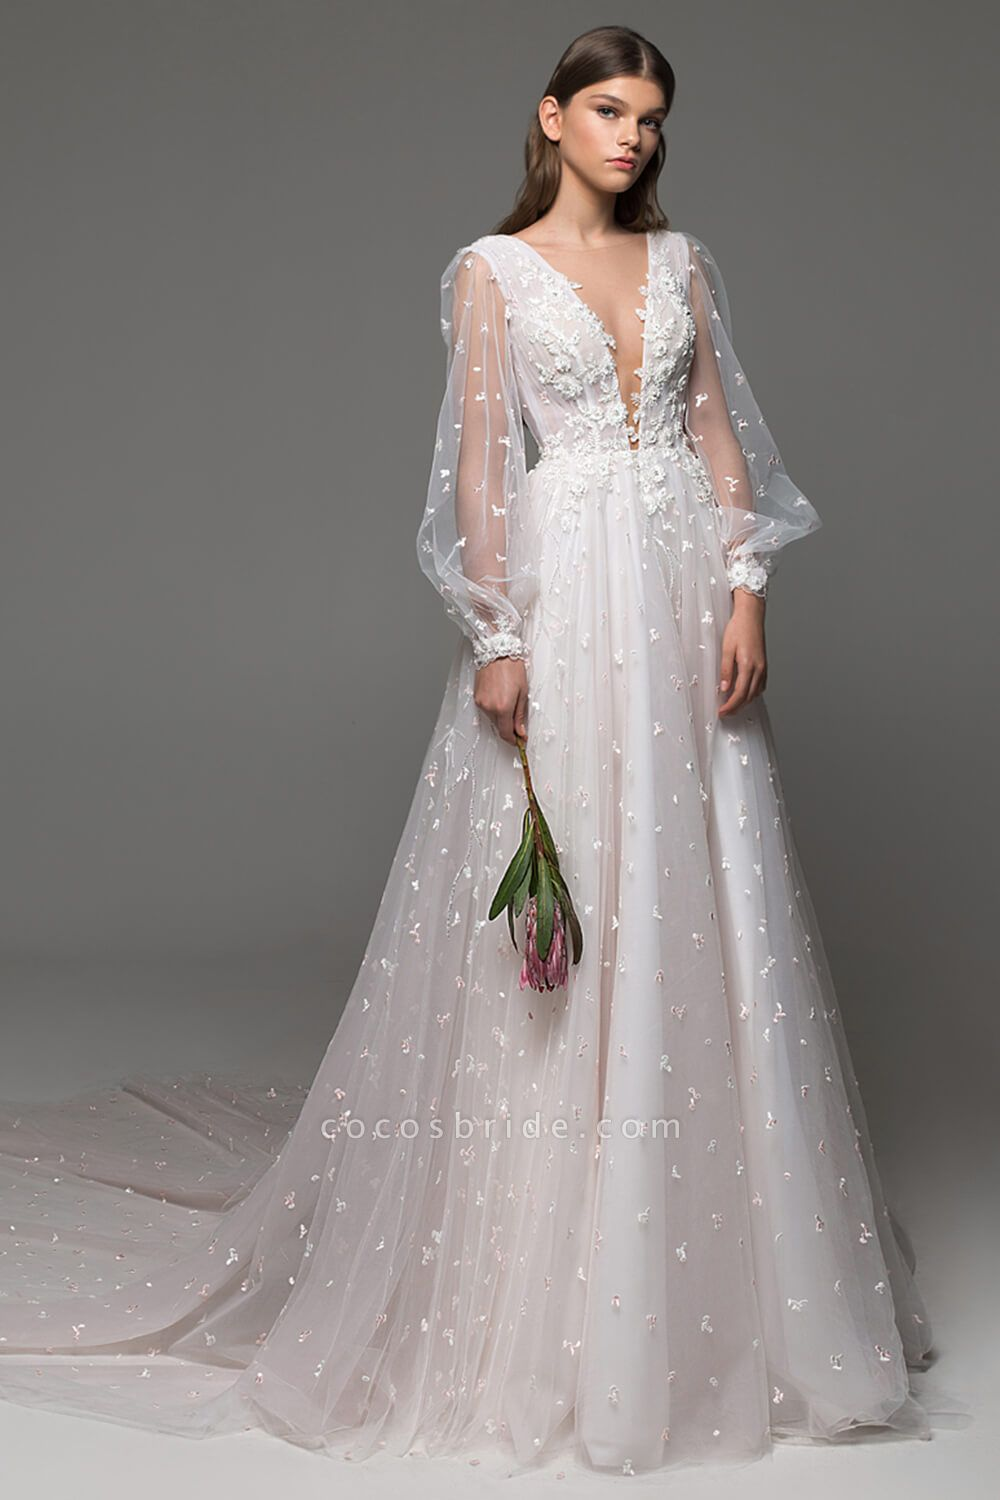 Long Sleeve Chapel Train Tulle A-line Wedding Dress